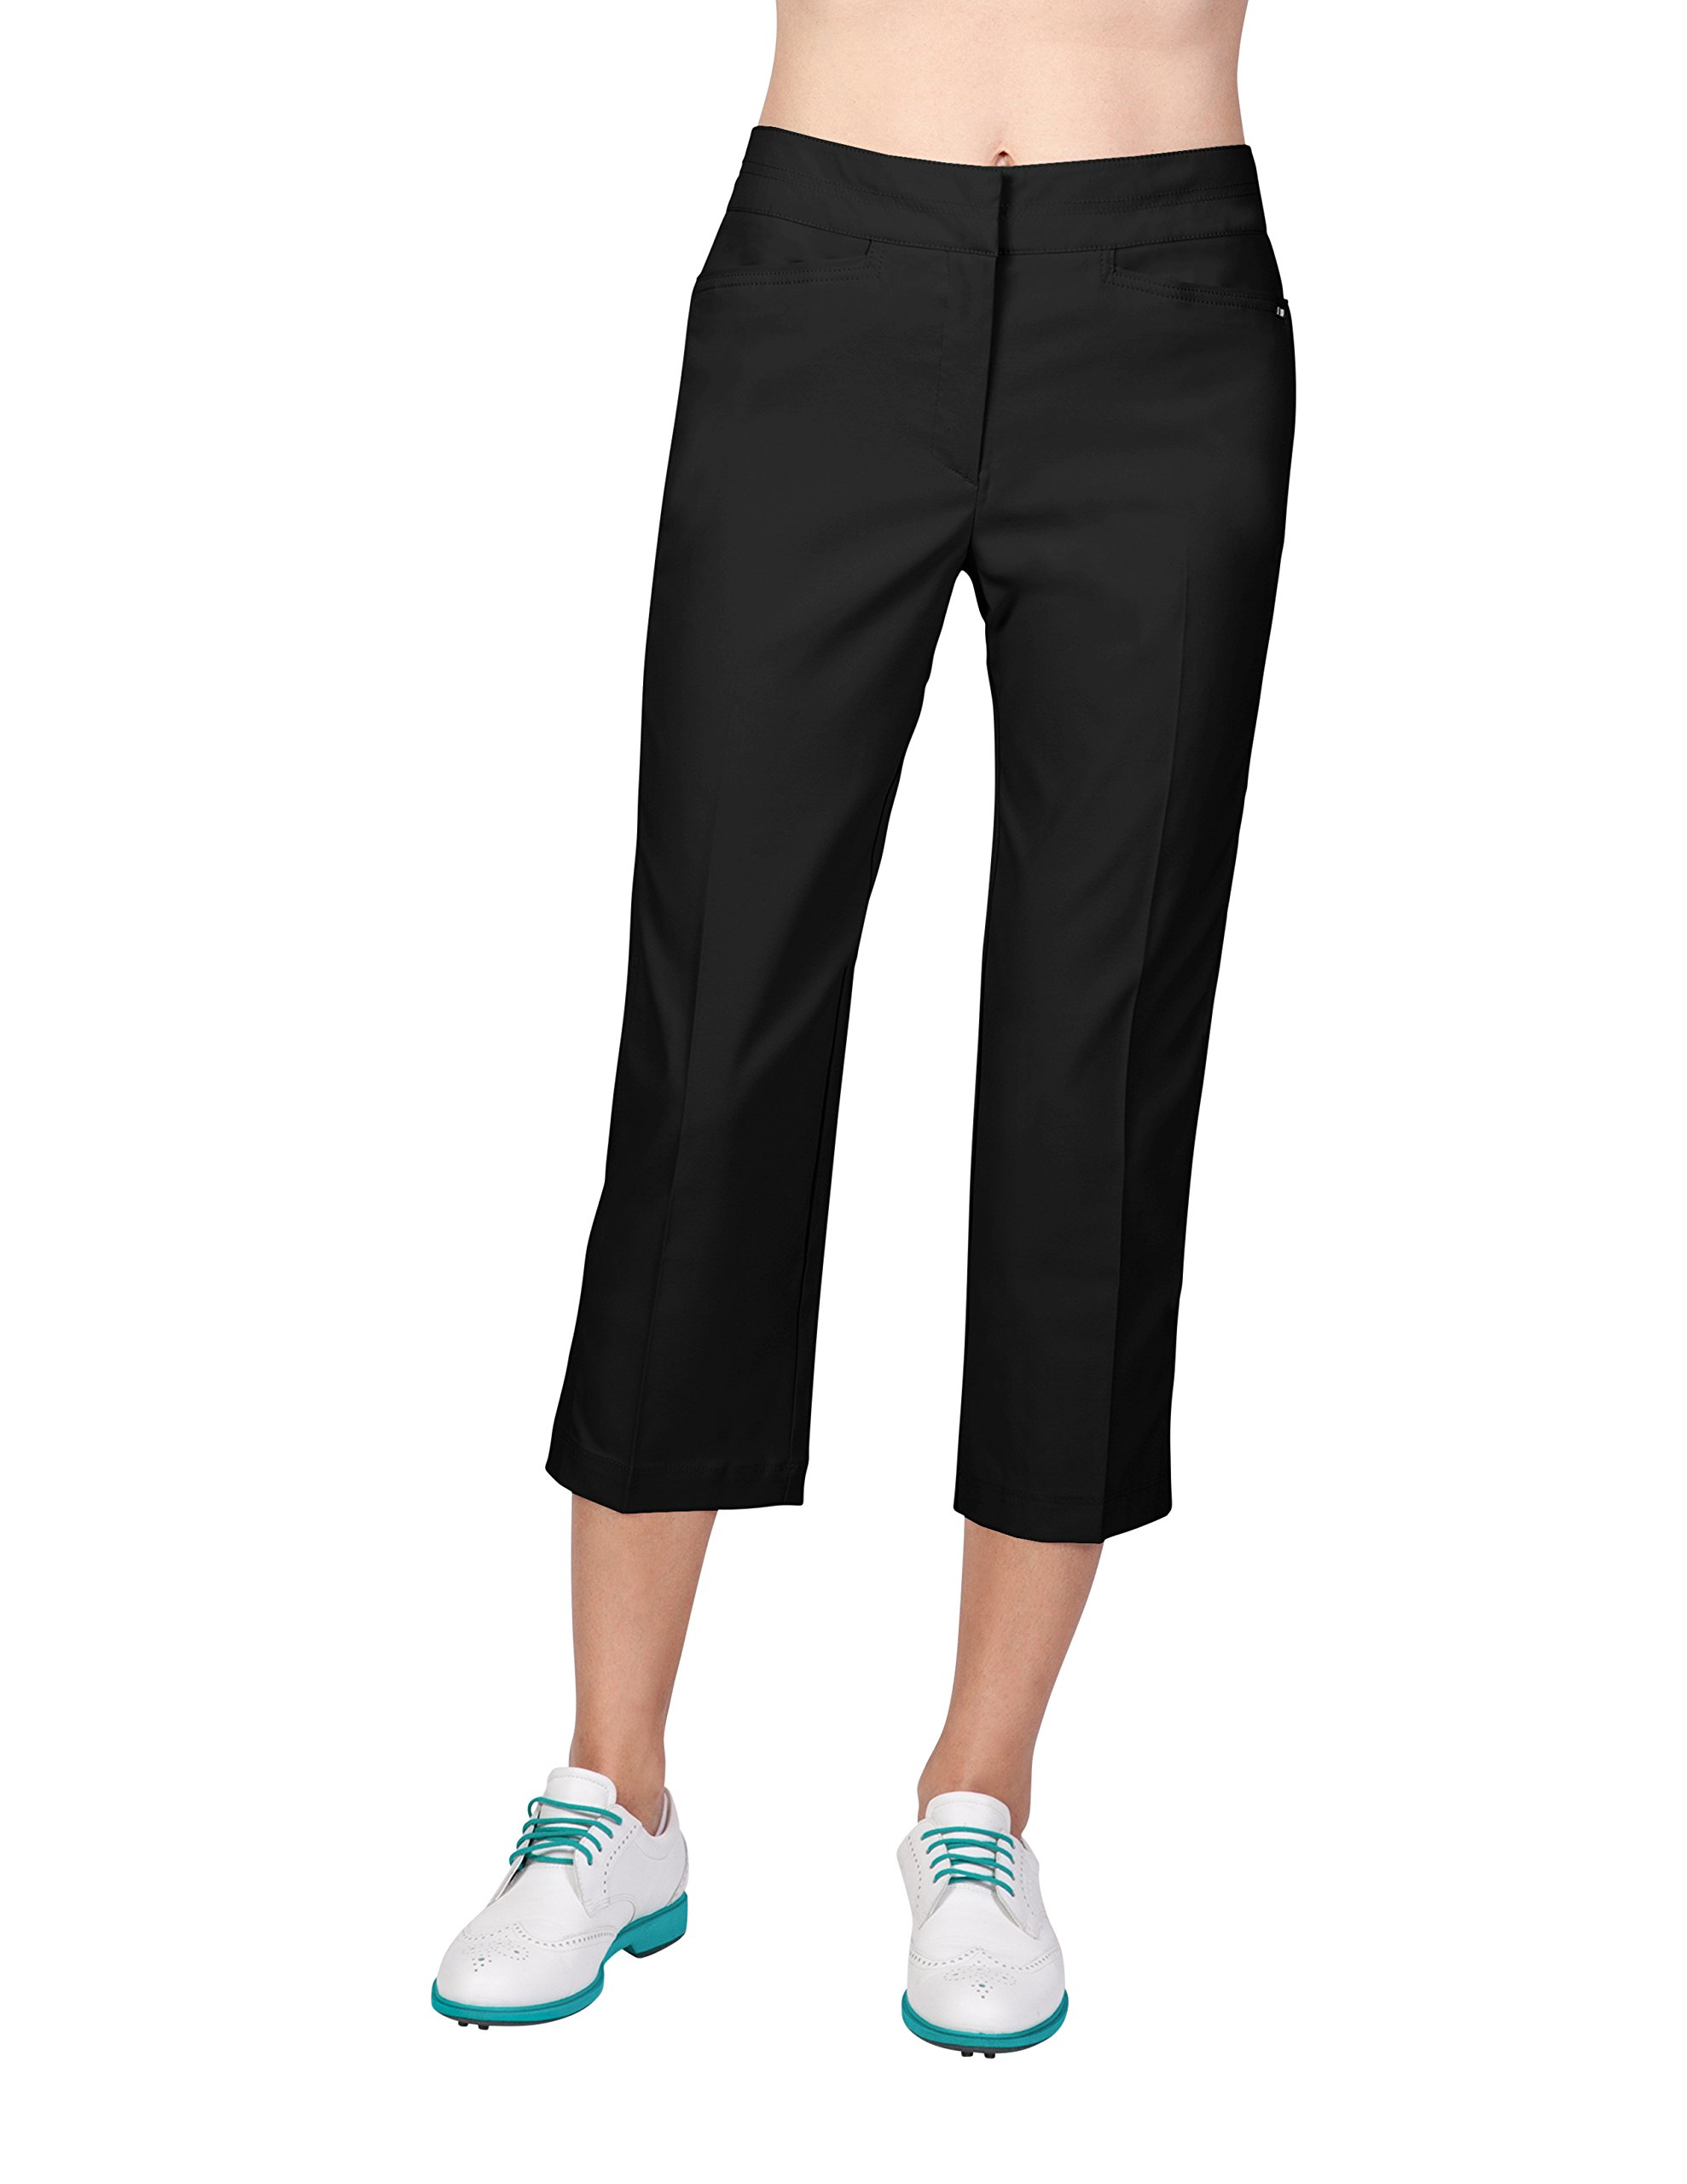 Tail Activewear Women's Classic Capri 6 Black by Tail (Image #1)